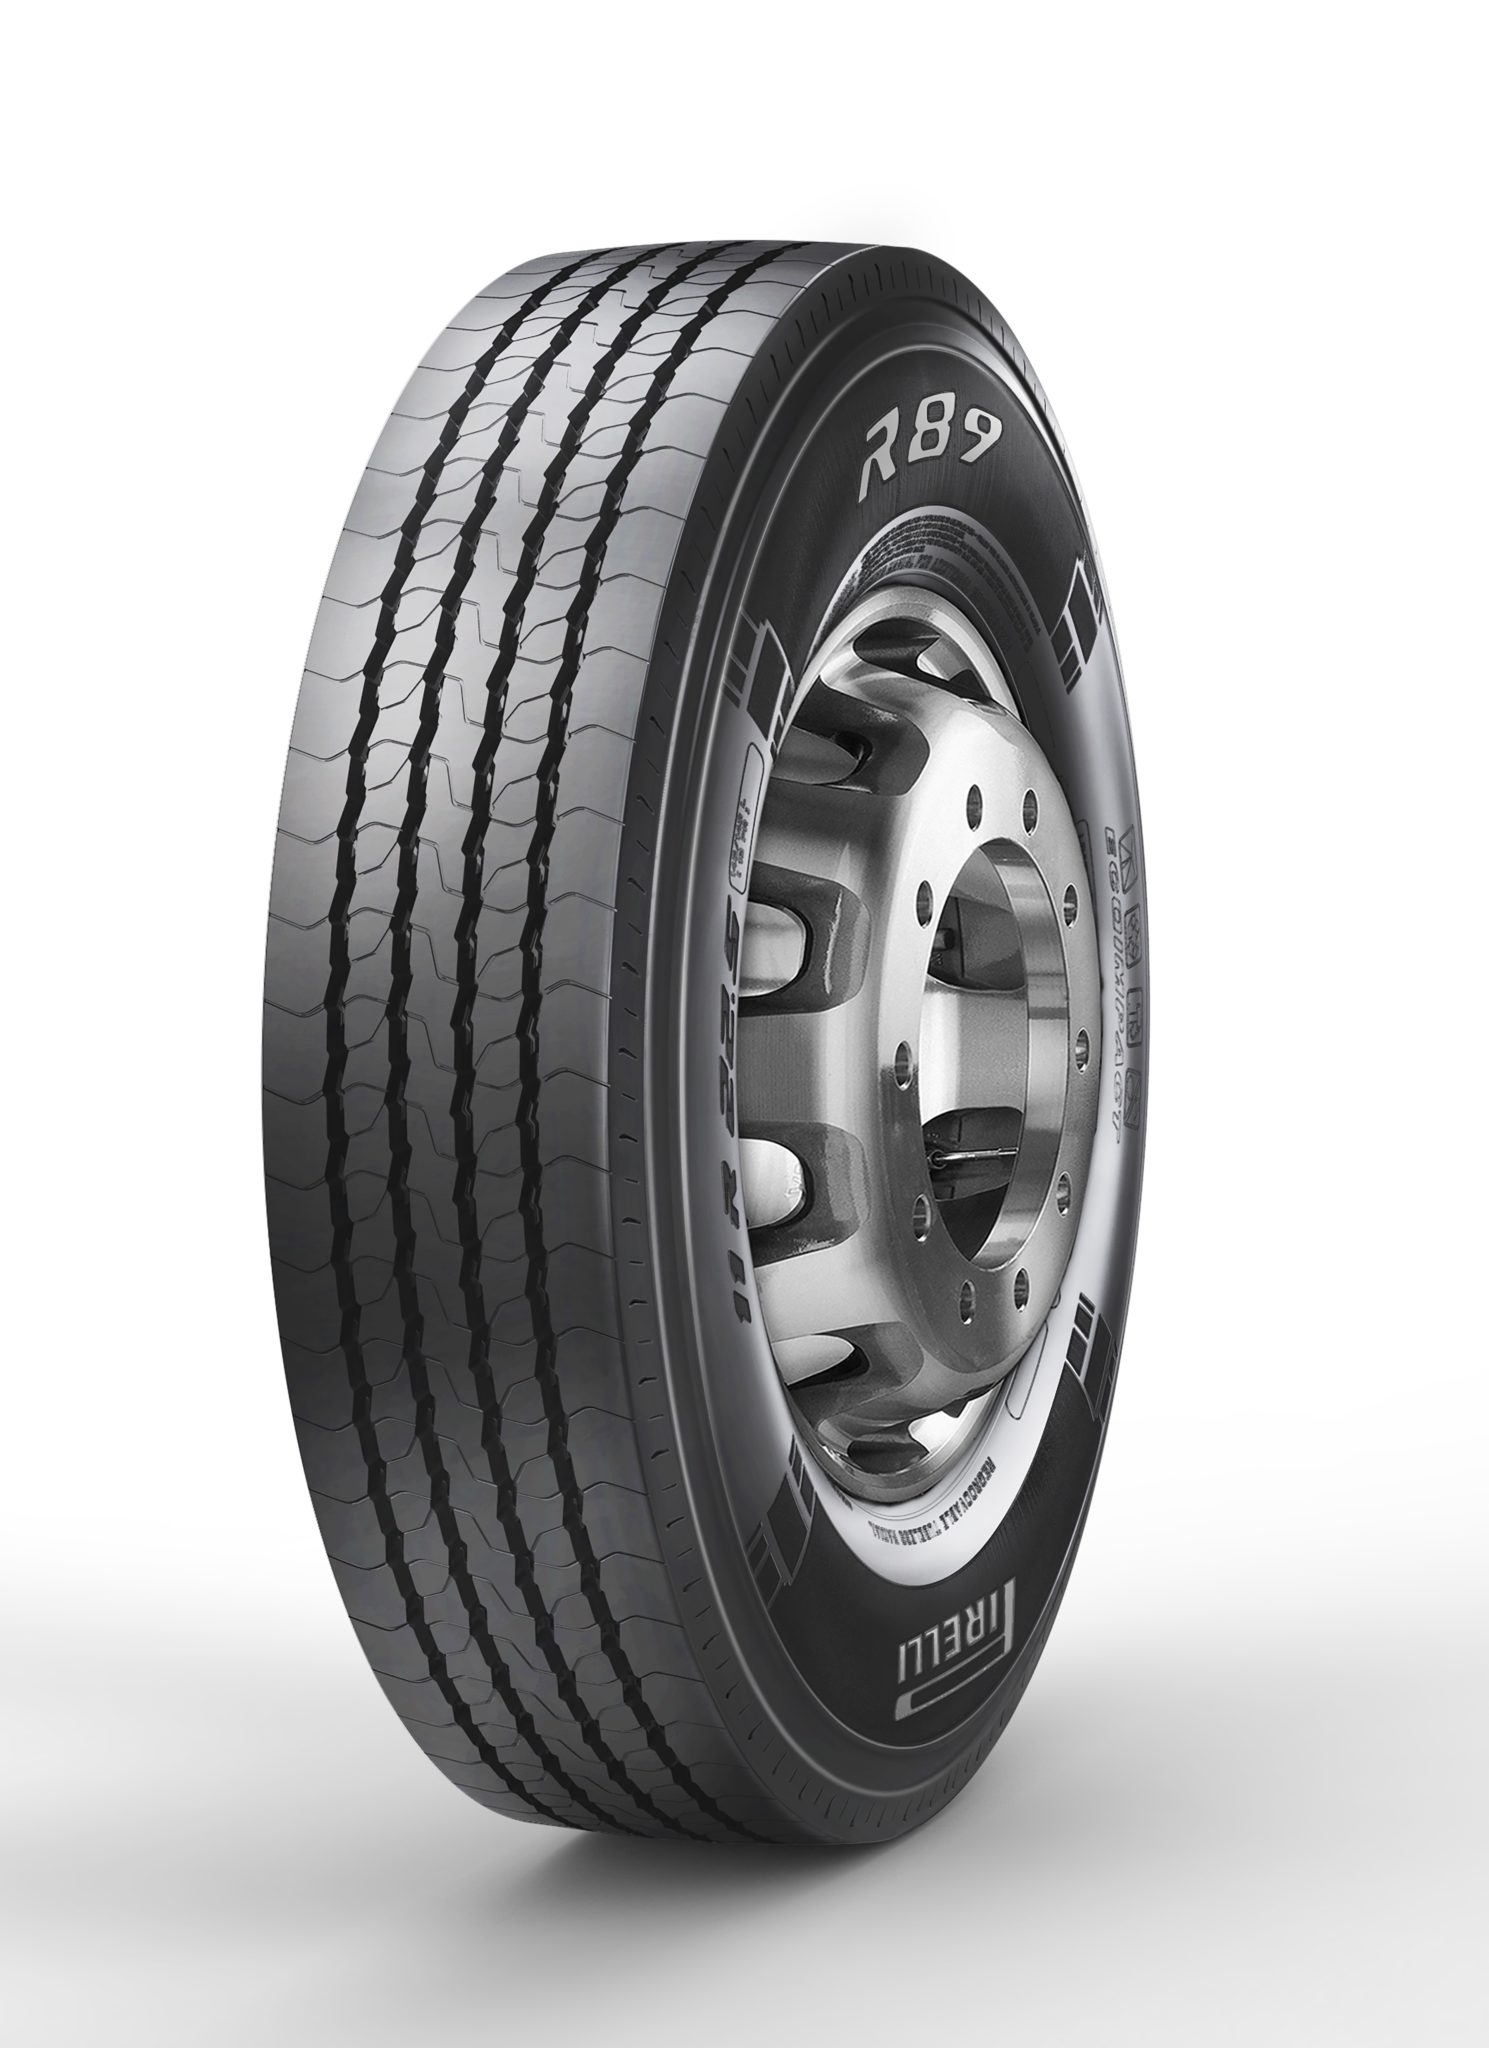 Prometeon launches Pirelli R89 Series tires | Today's